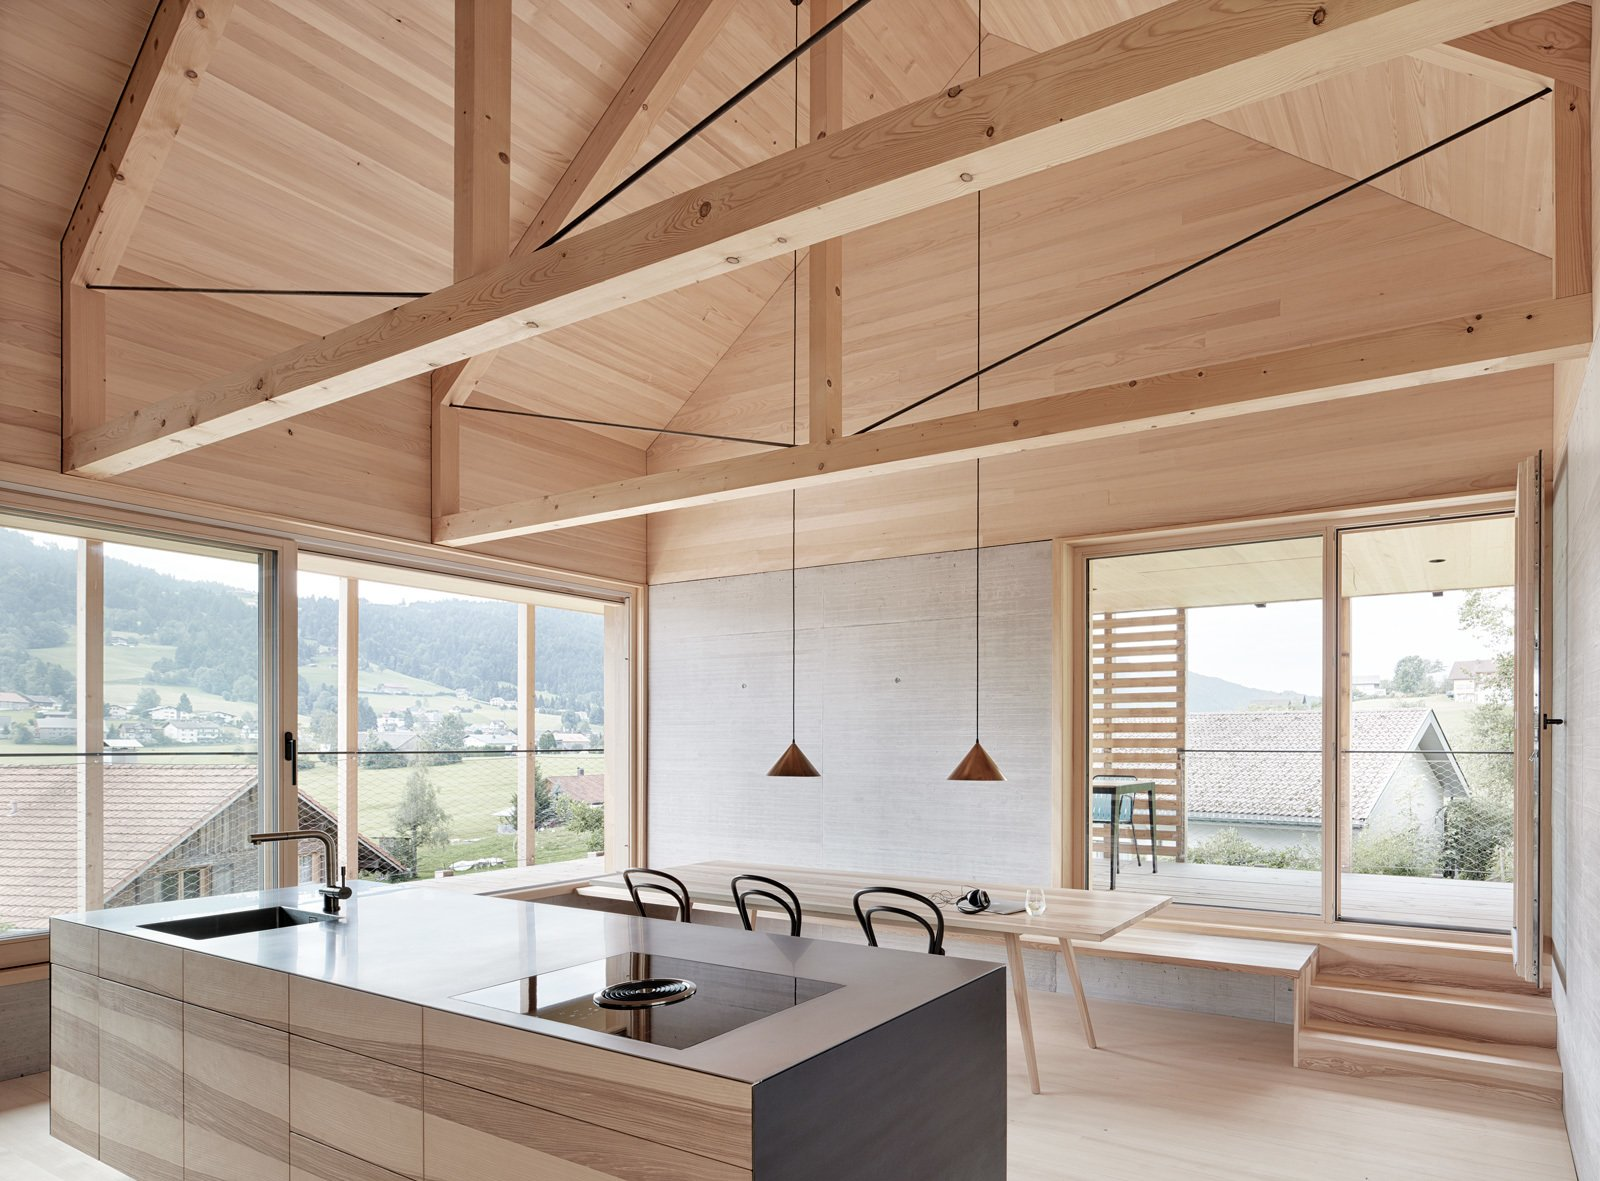 Dining, Pendant, Chair, Table, Bench, and Light Hardwood Exposed trusses celebrate the home's timber construction.  Best Dining Light Hardwood Chair Bench Photos from A Minimalist Home Is Built Into Steep Terrain in an Austrian Valley